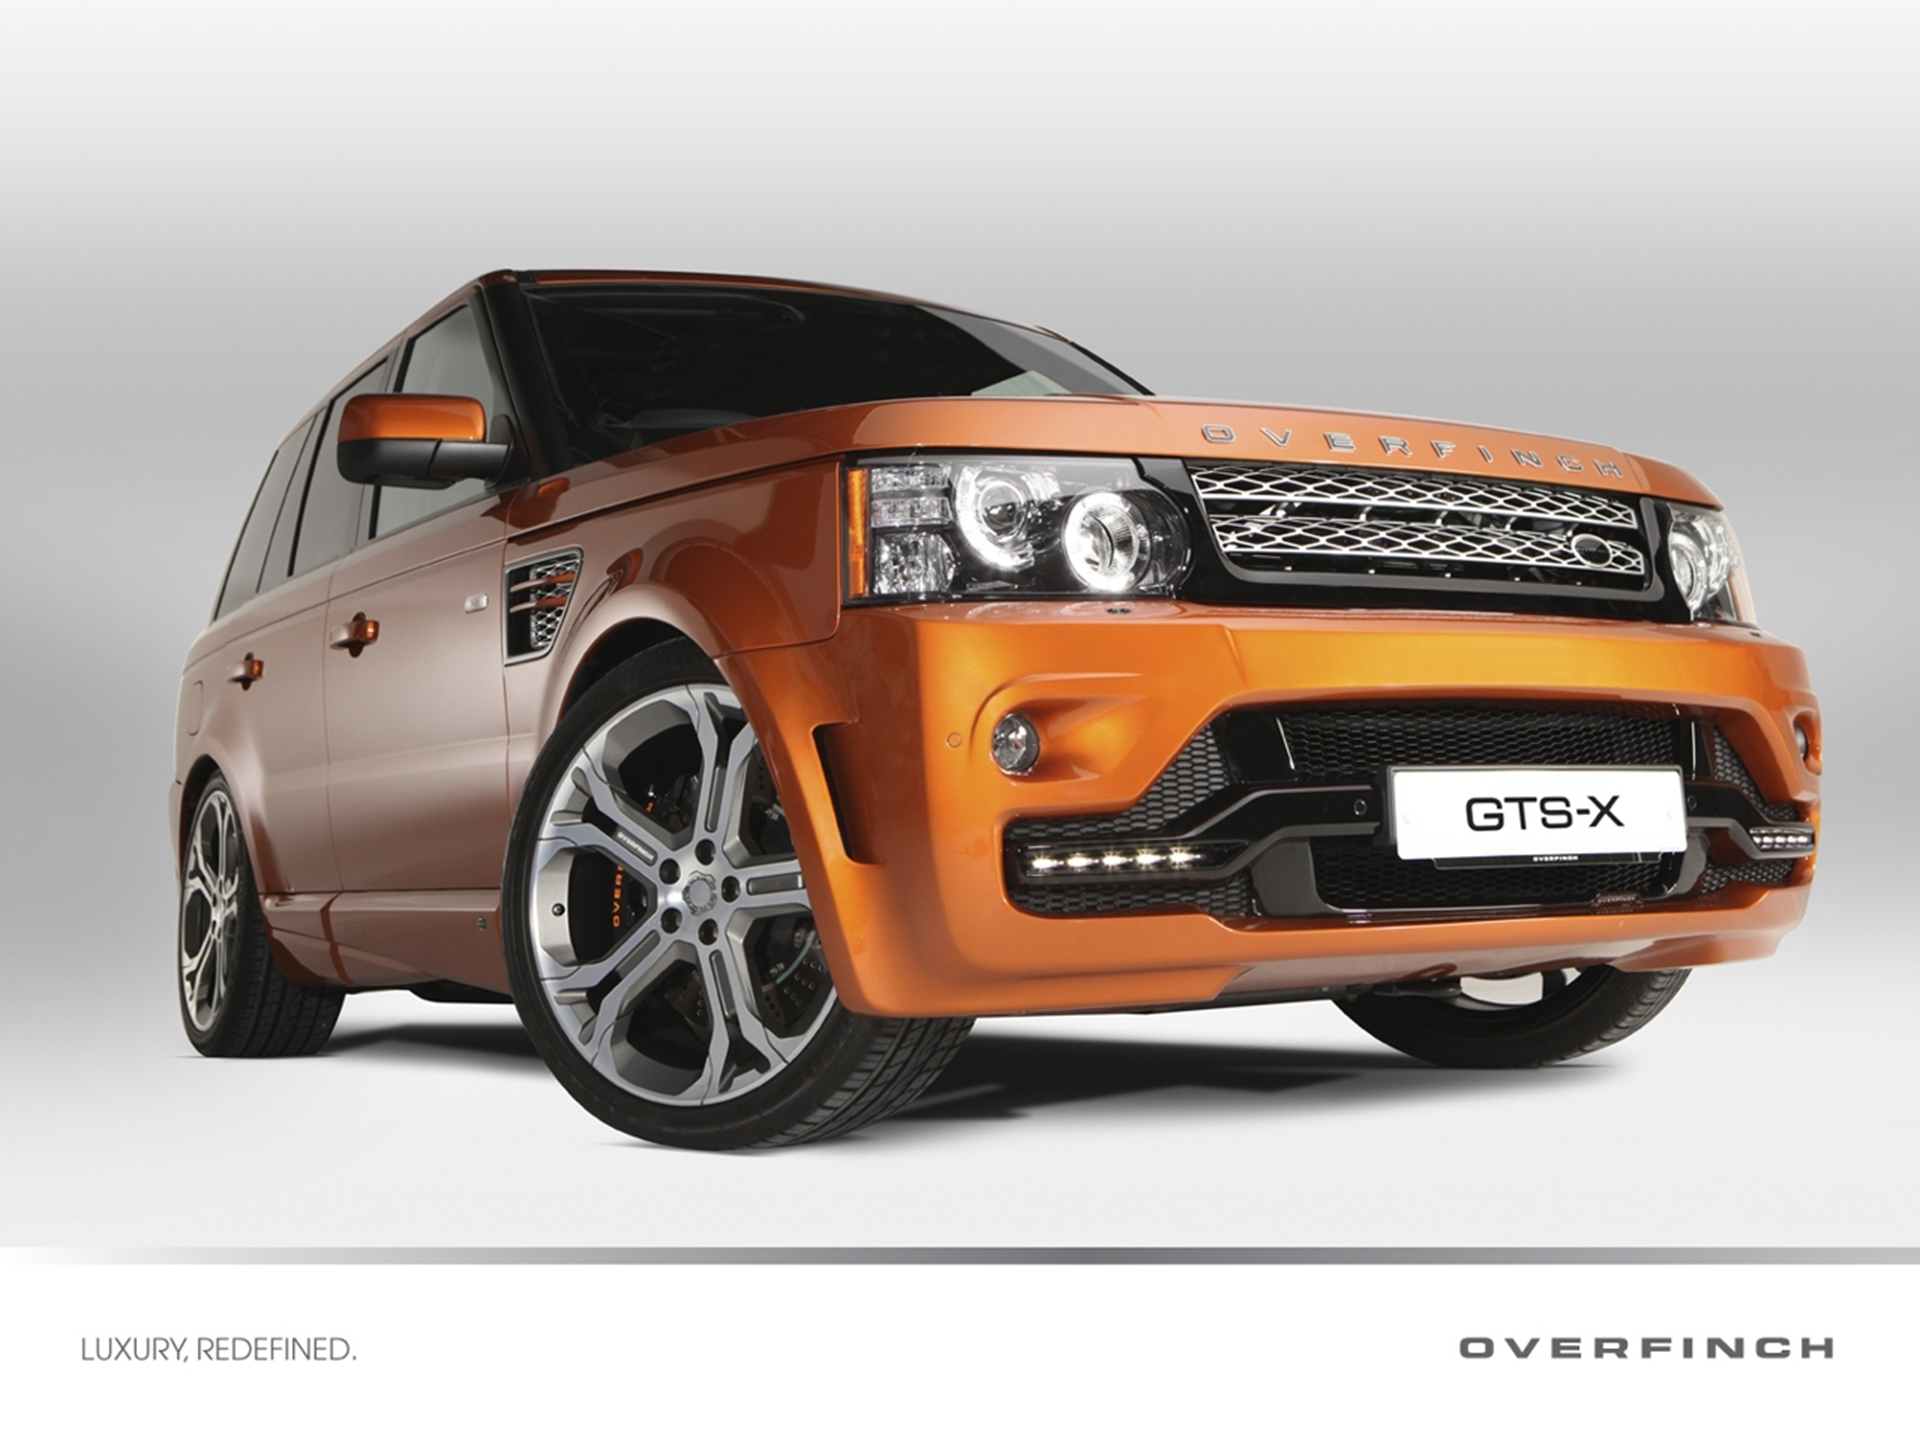 Limited Edition Overfinch Range Rover Sport GTS-X